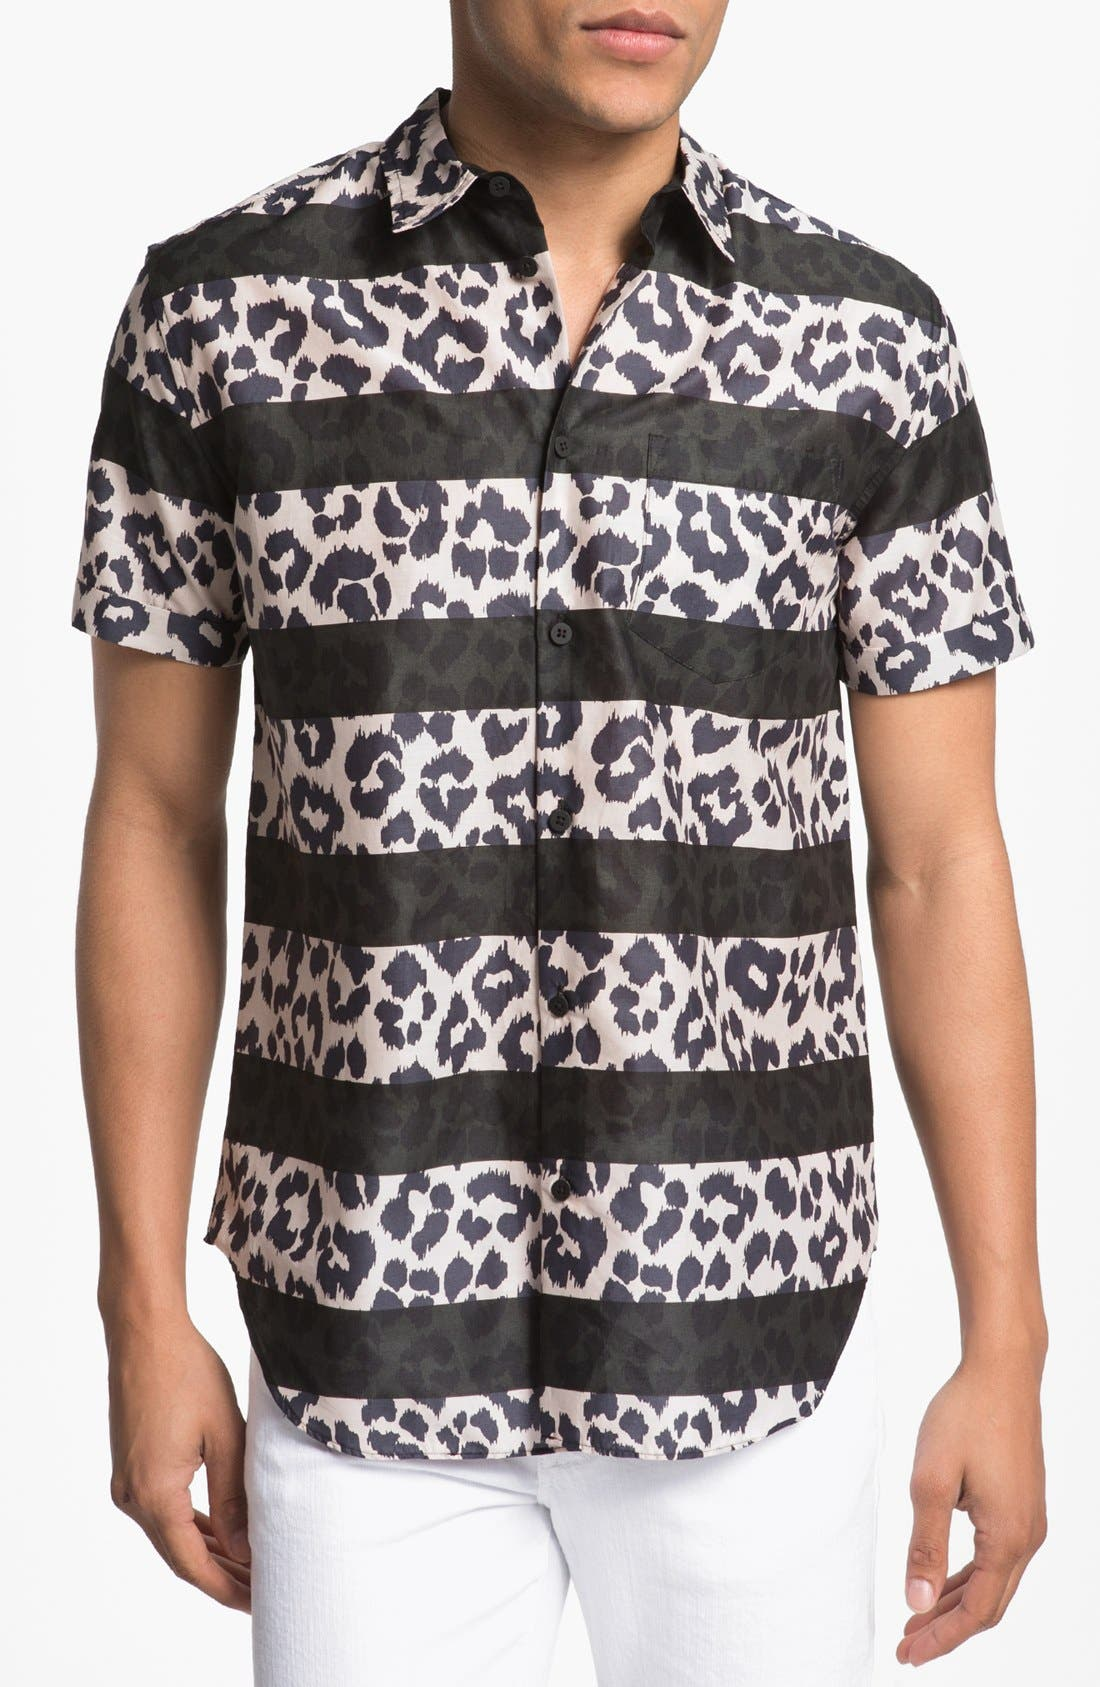 Alternate Image 1 Selected - MARC BY MARC JACOBS Stripe Cheetah Print Woven Shirt